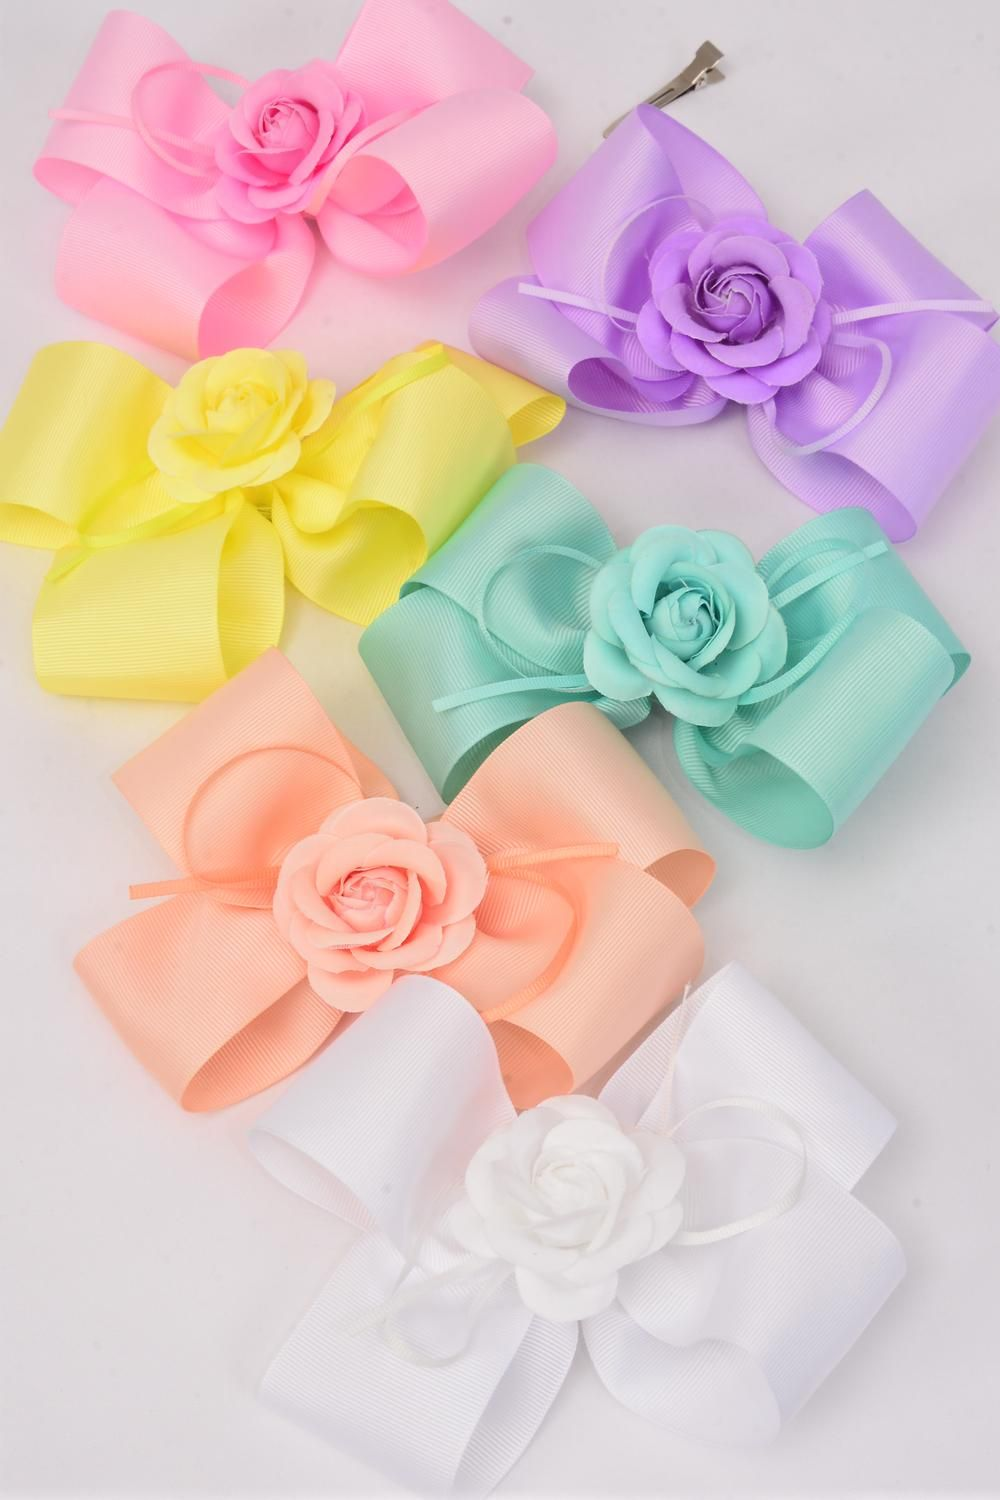 "Hair Bow Jumbo Pastel Center Flower Alligator Clip Grosgrain Bow-tie/DZ **Pastel** Size-6""x 6"" Wide,Alligator Clip,2 of each Color Asst,Clip Strip & UPC Code"